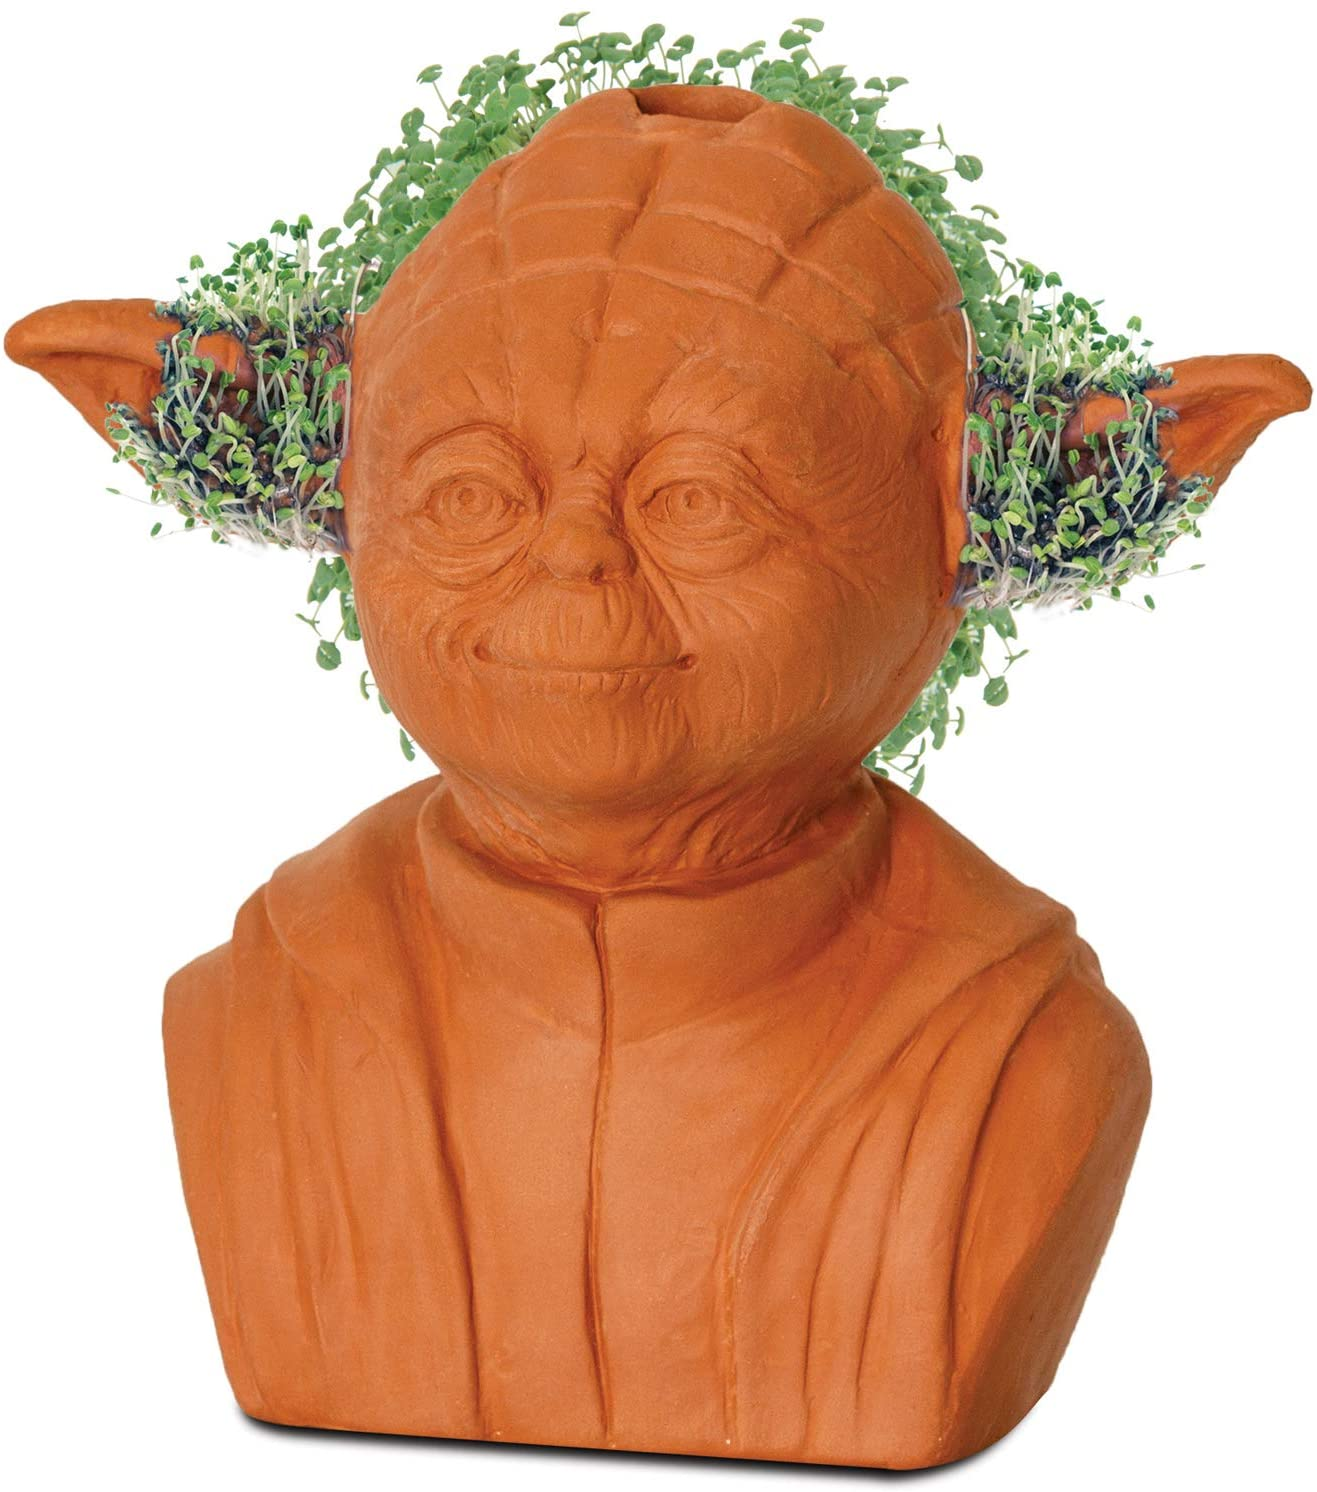 Baby Yoda is now a Chia Pet 17